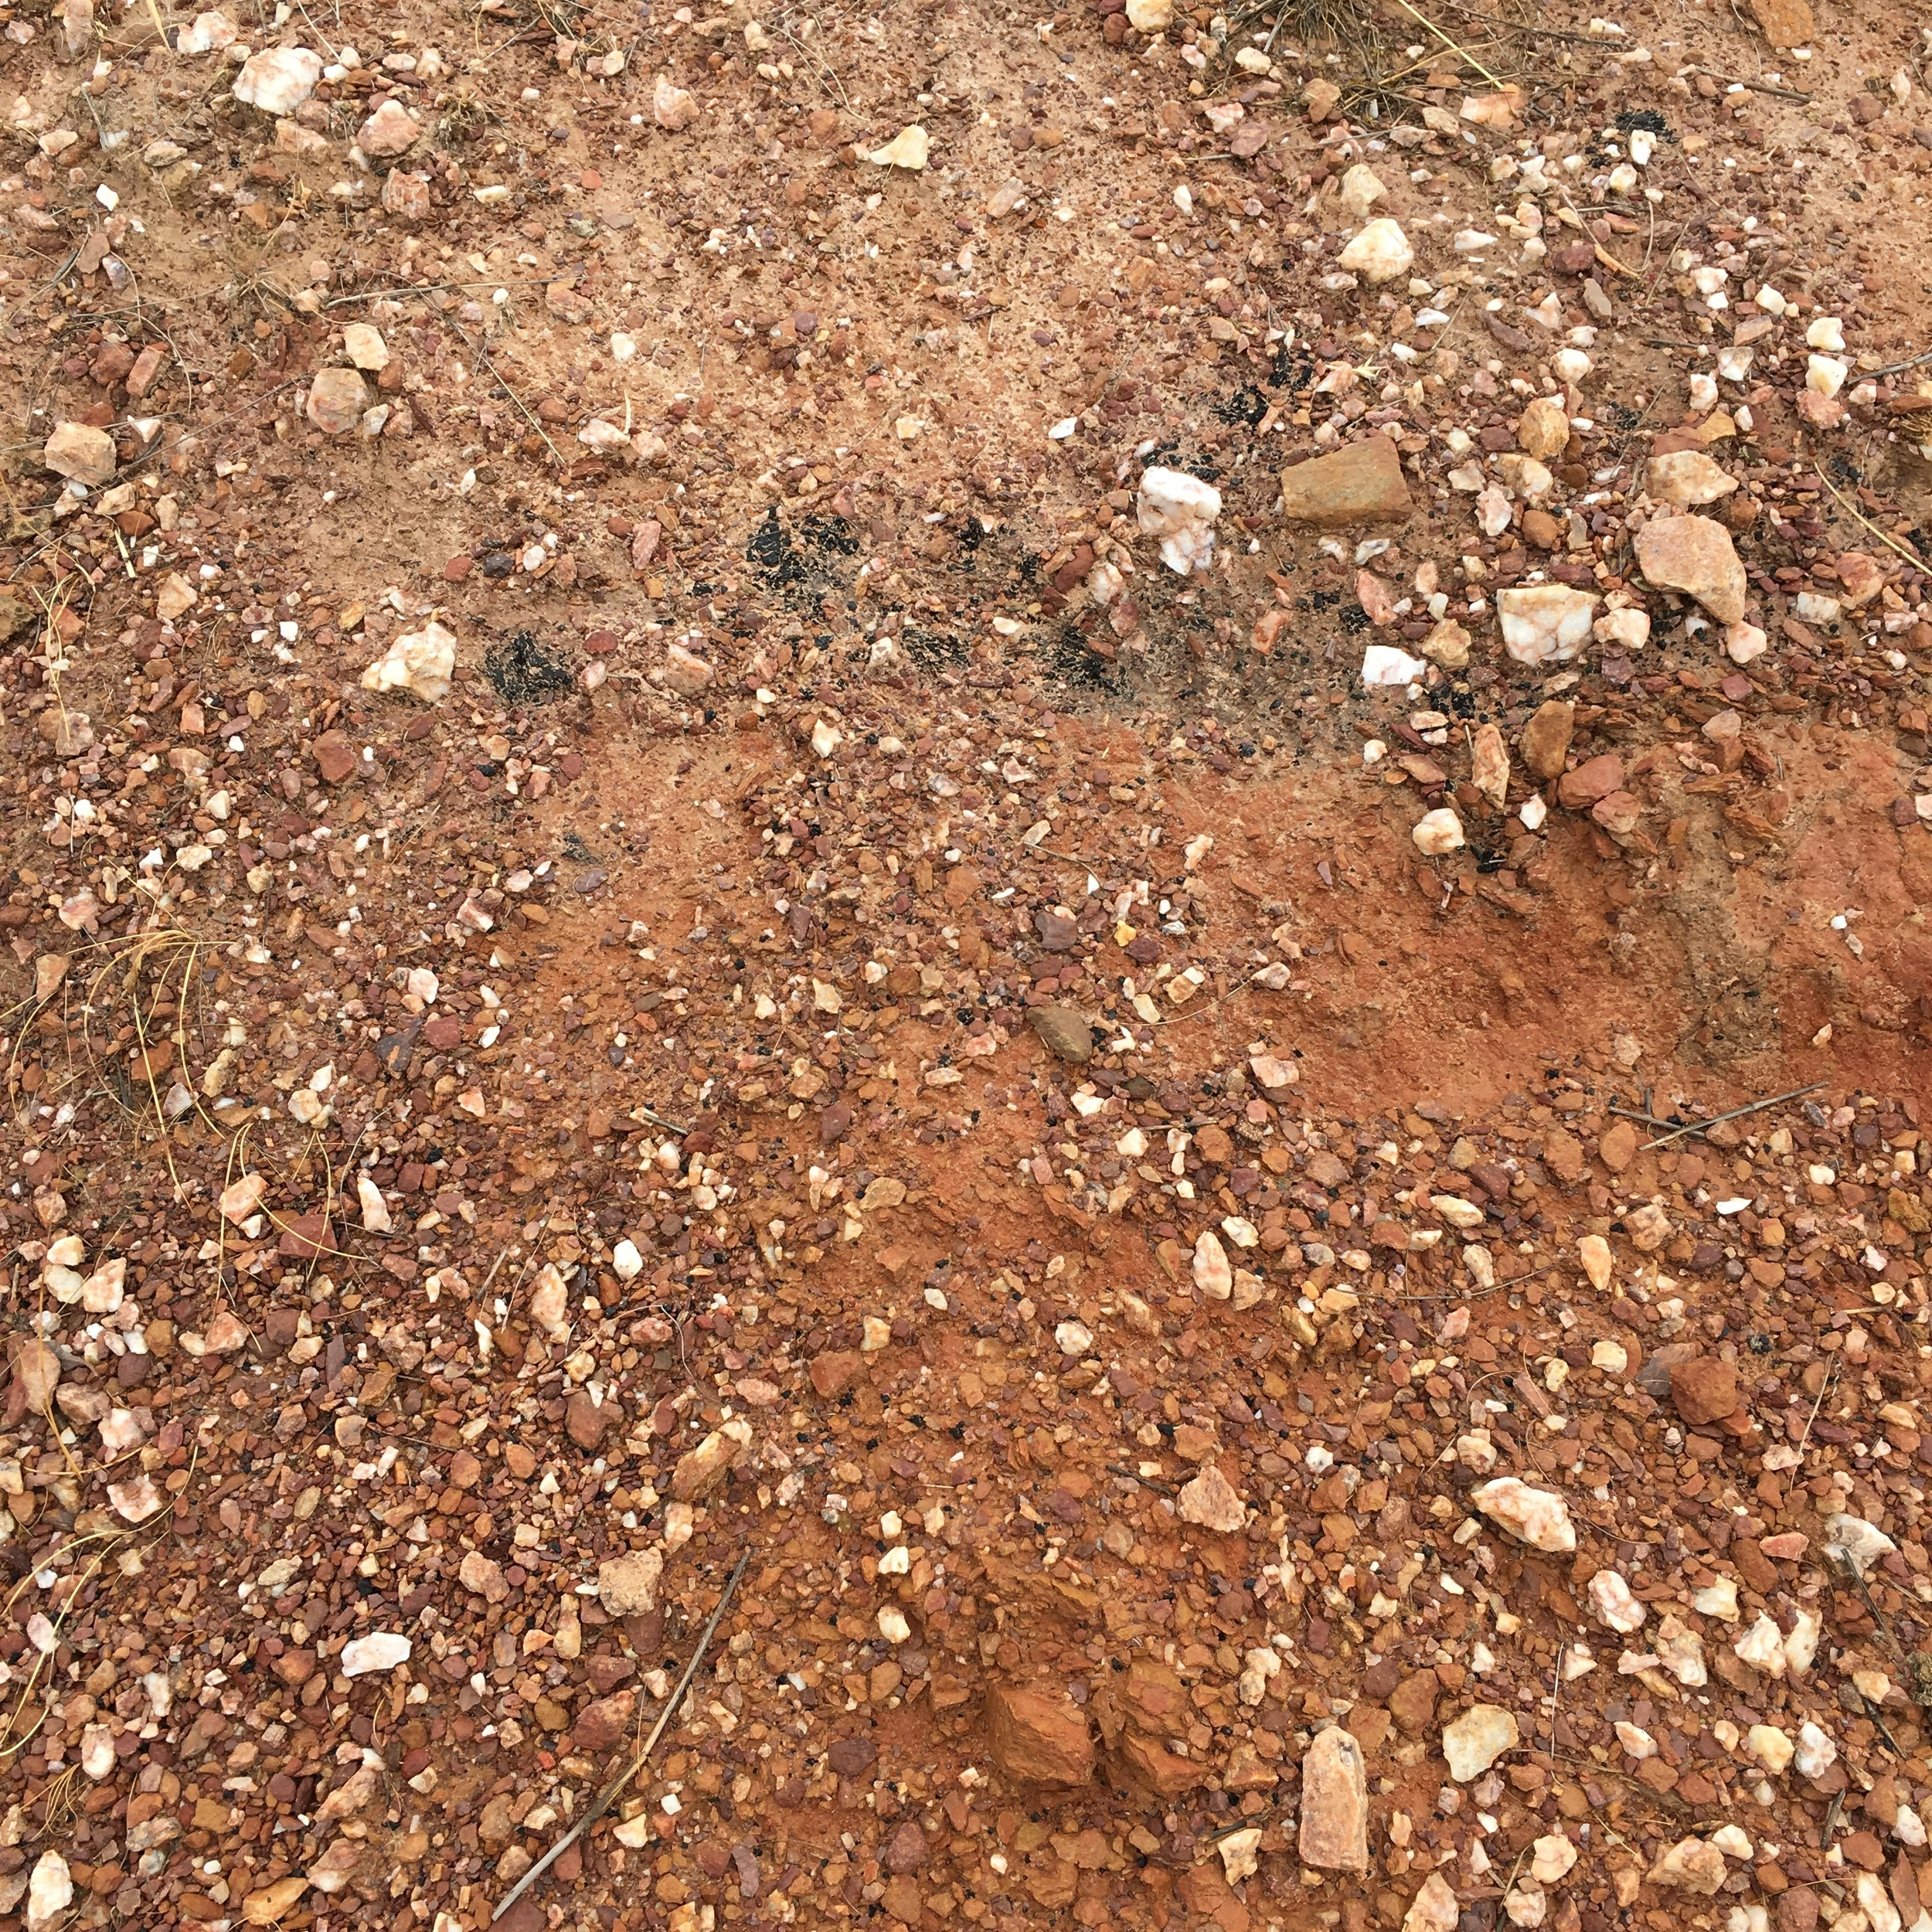 Soil at the Malakoff Estate vineyard